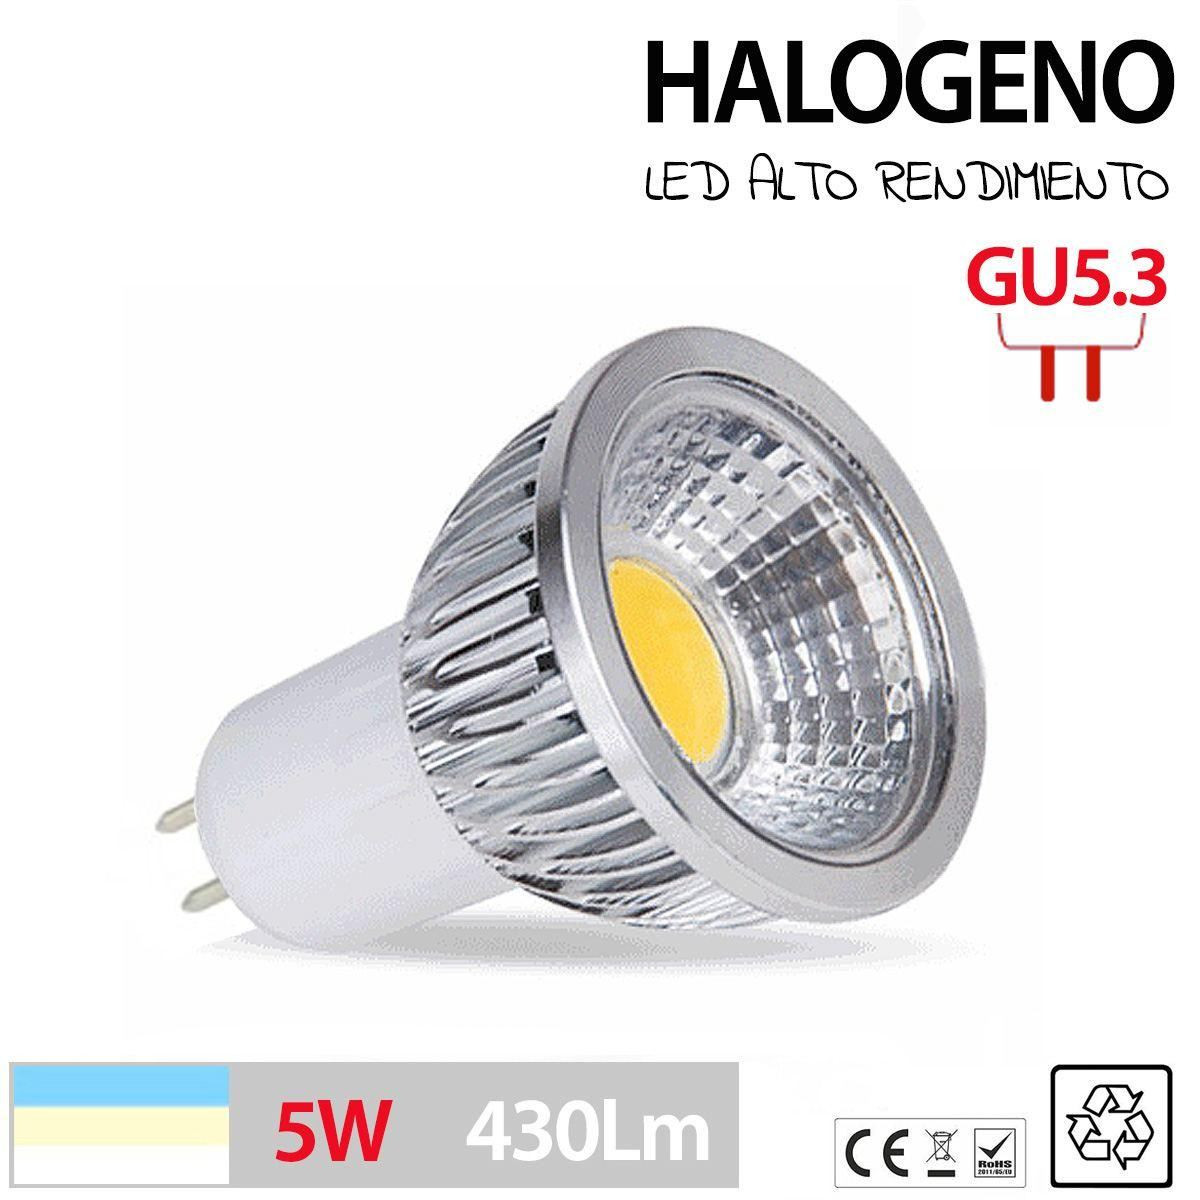 Bombillas Led Gu5 3 Impresionante Halogenos Led Gu10 Gu5 3 Mr16 En 3w 5w 7w Blanco Calido Of 33  Único Bombillas Led Gu5 3